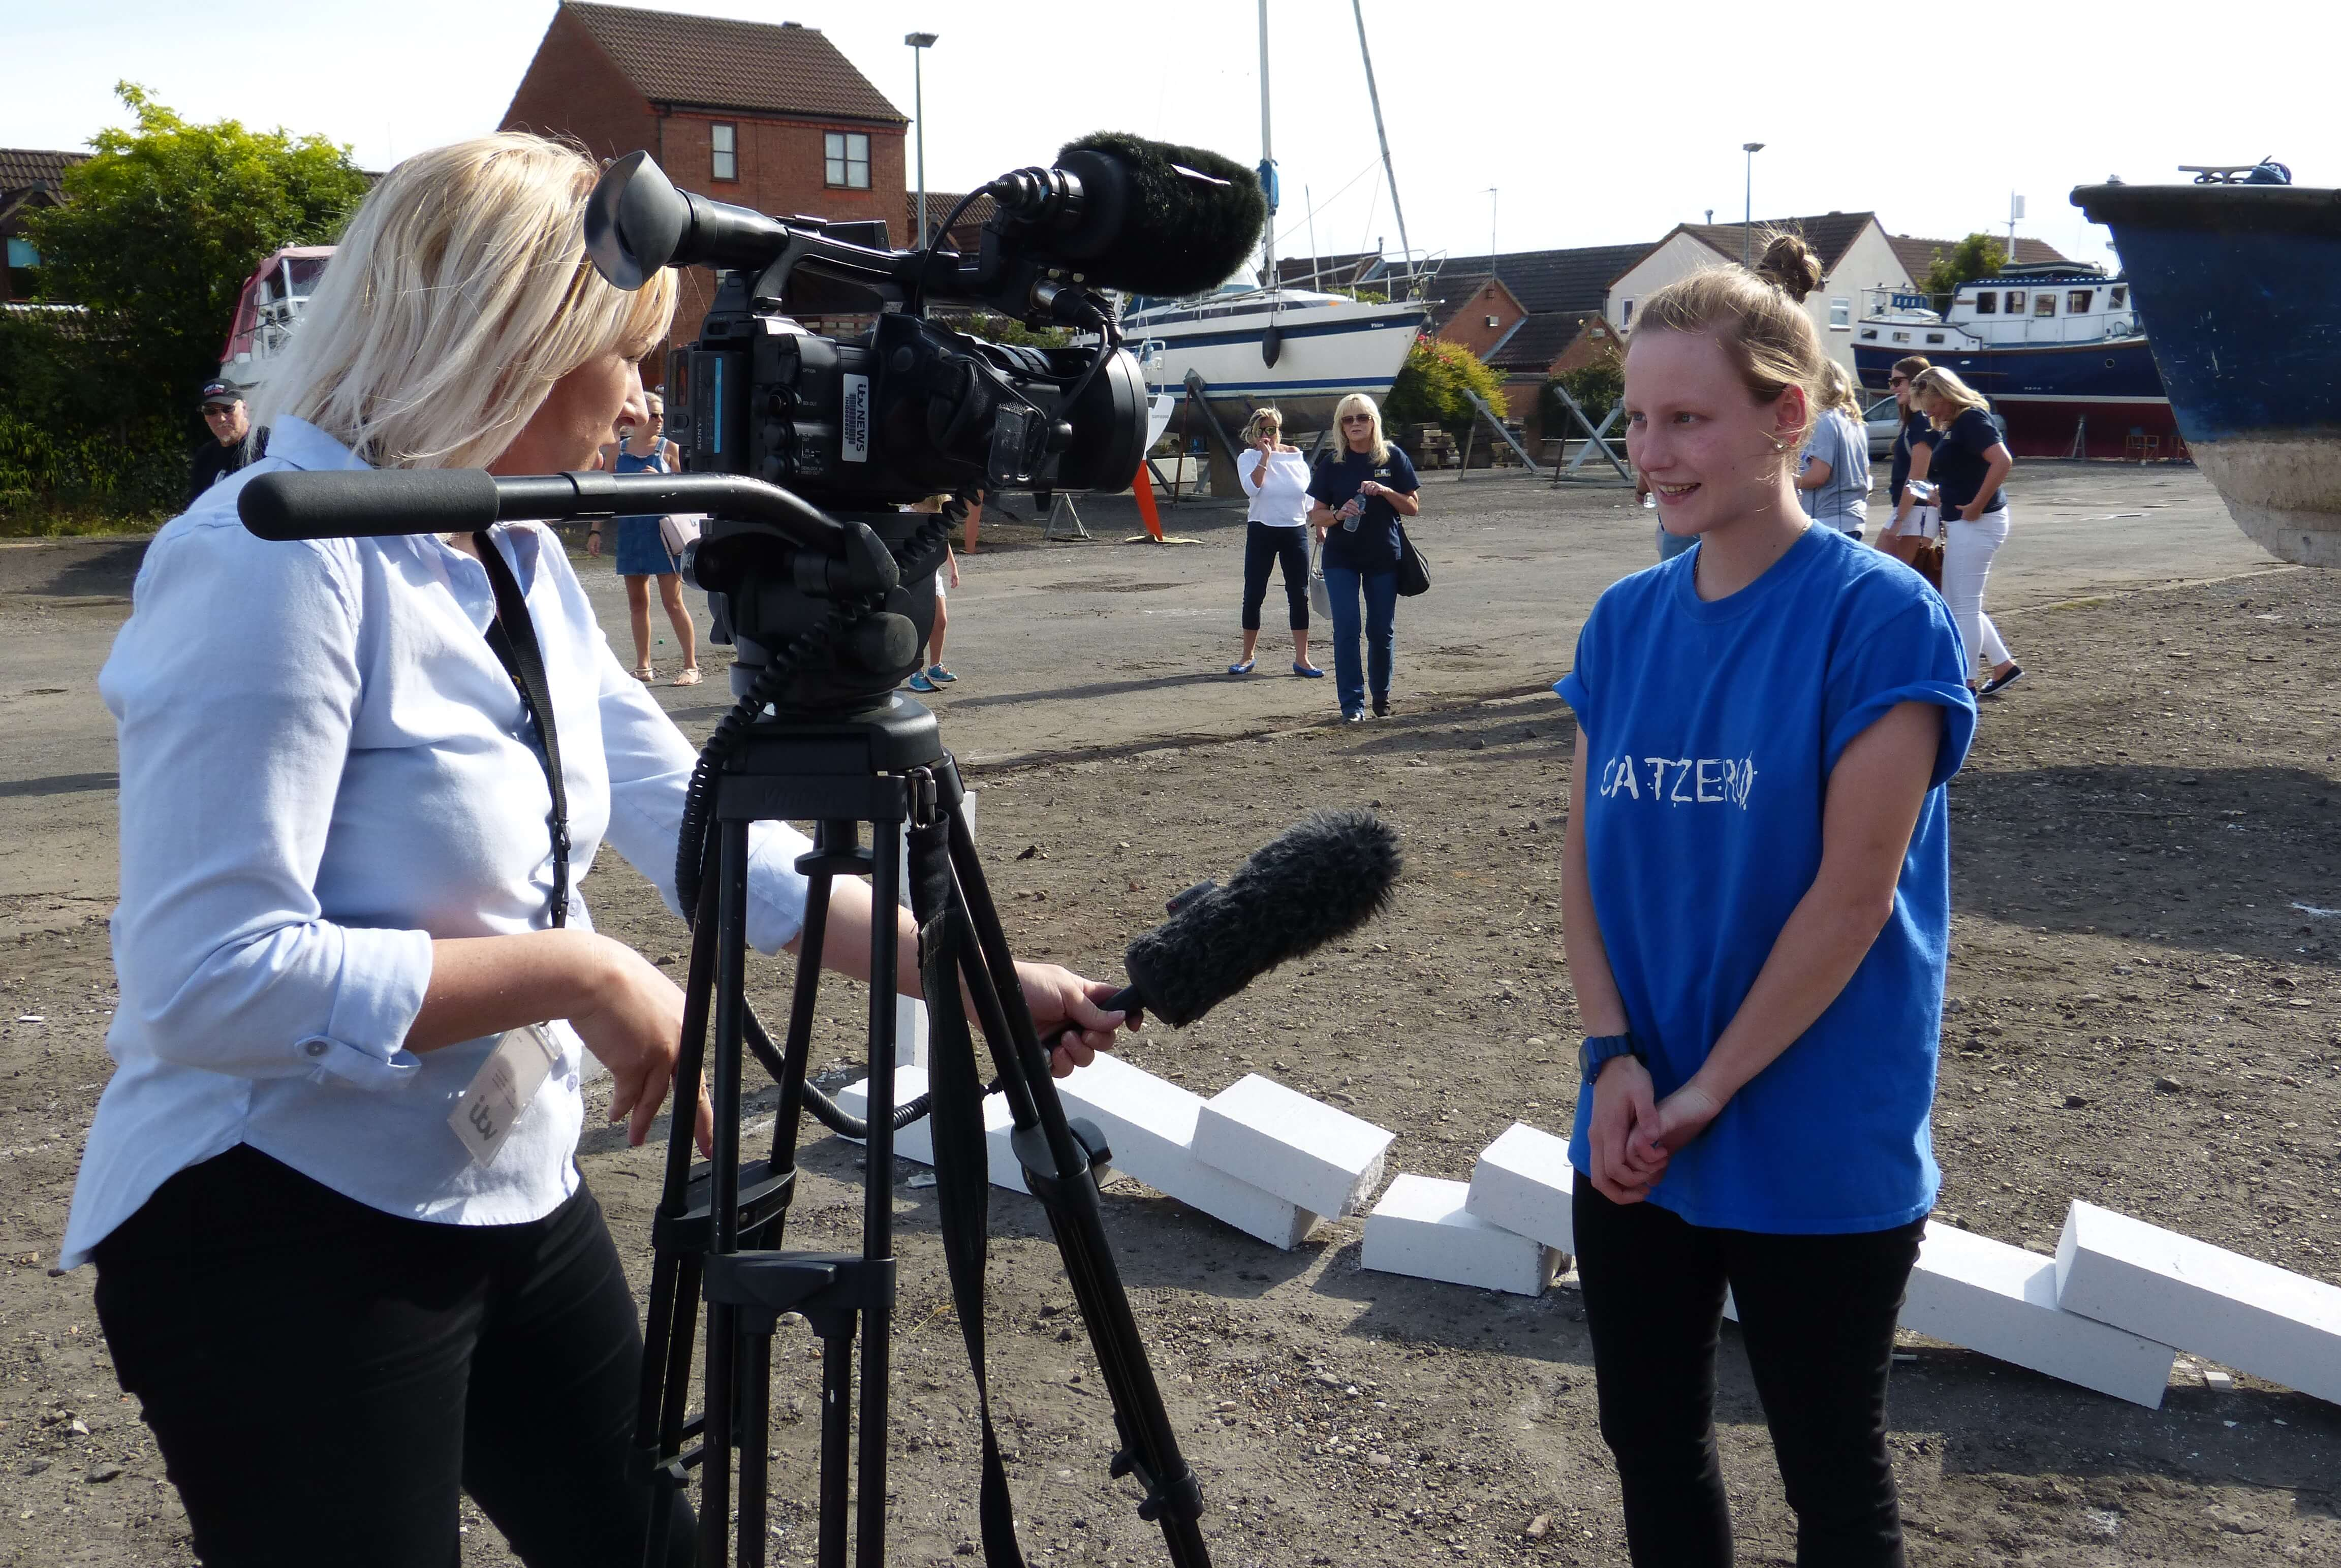 Beth was 'overwhelmed' to start Hull's great domino event!